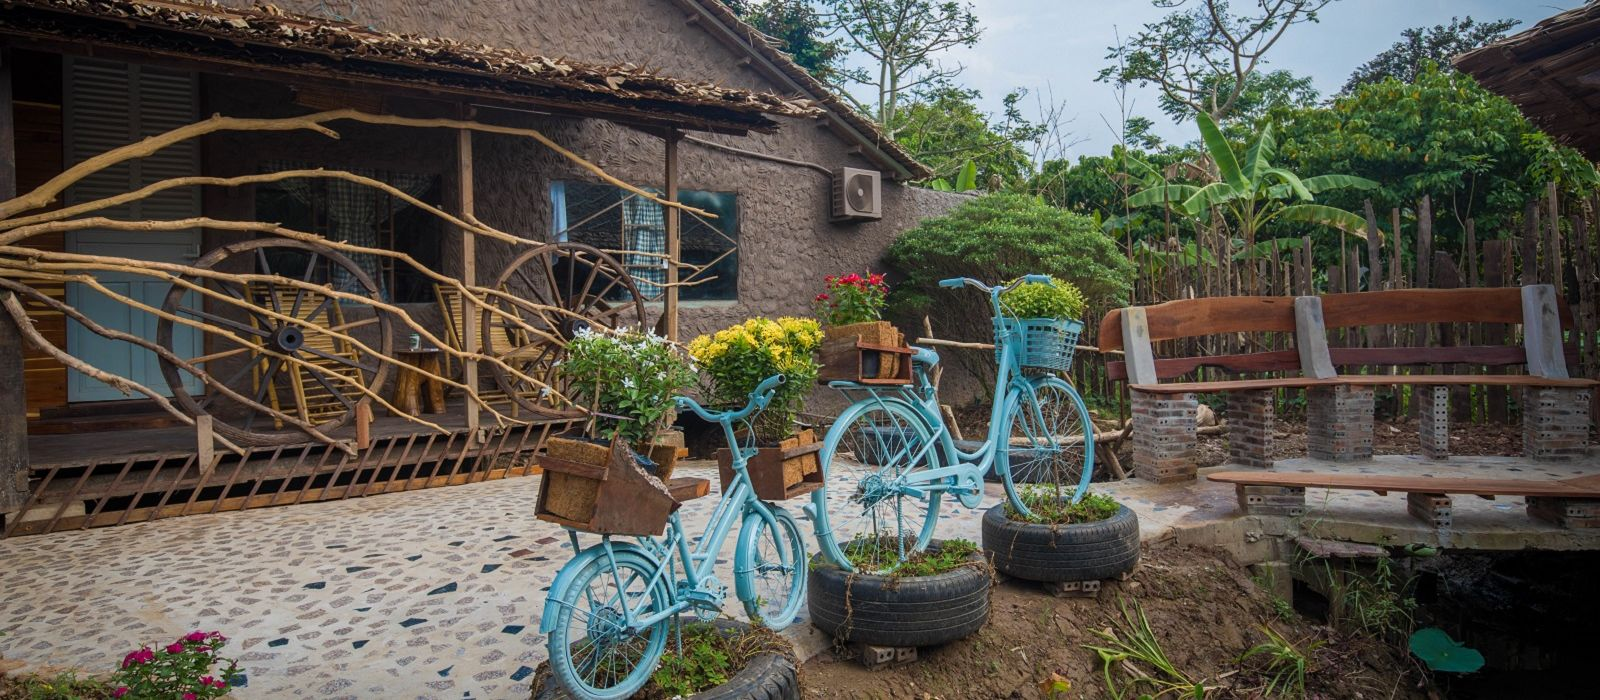 Hotel Mekong Rustic Can Tho Vietnam